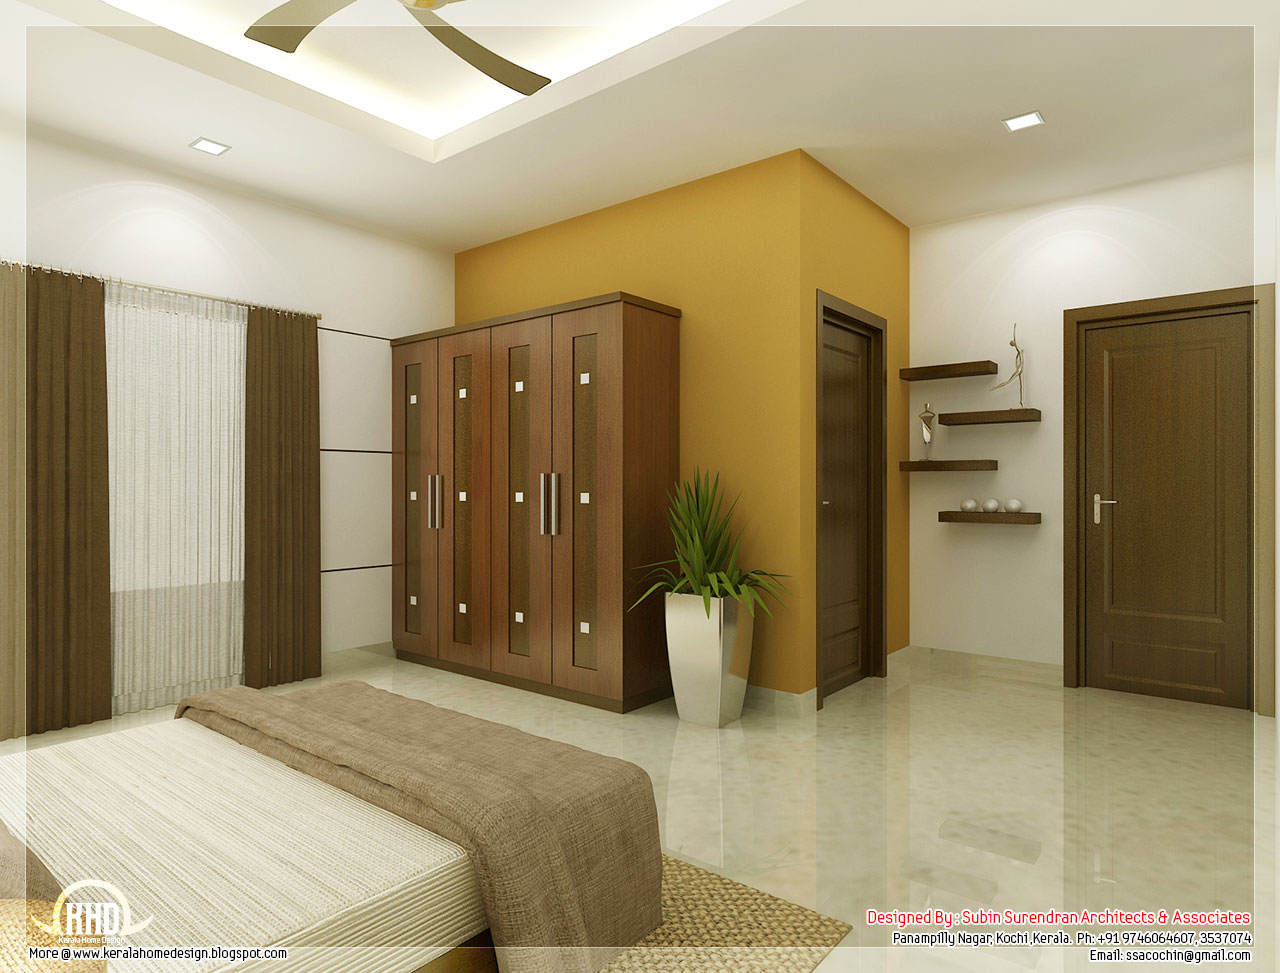 Design Bedroom bedroom designs interior design ideas ceiling. Interior design for small bedroom in india